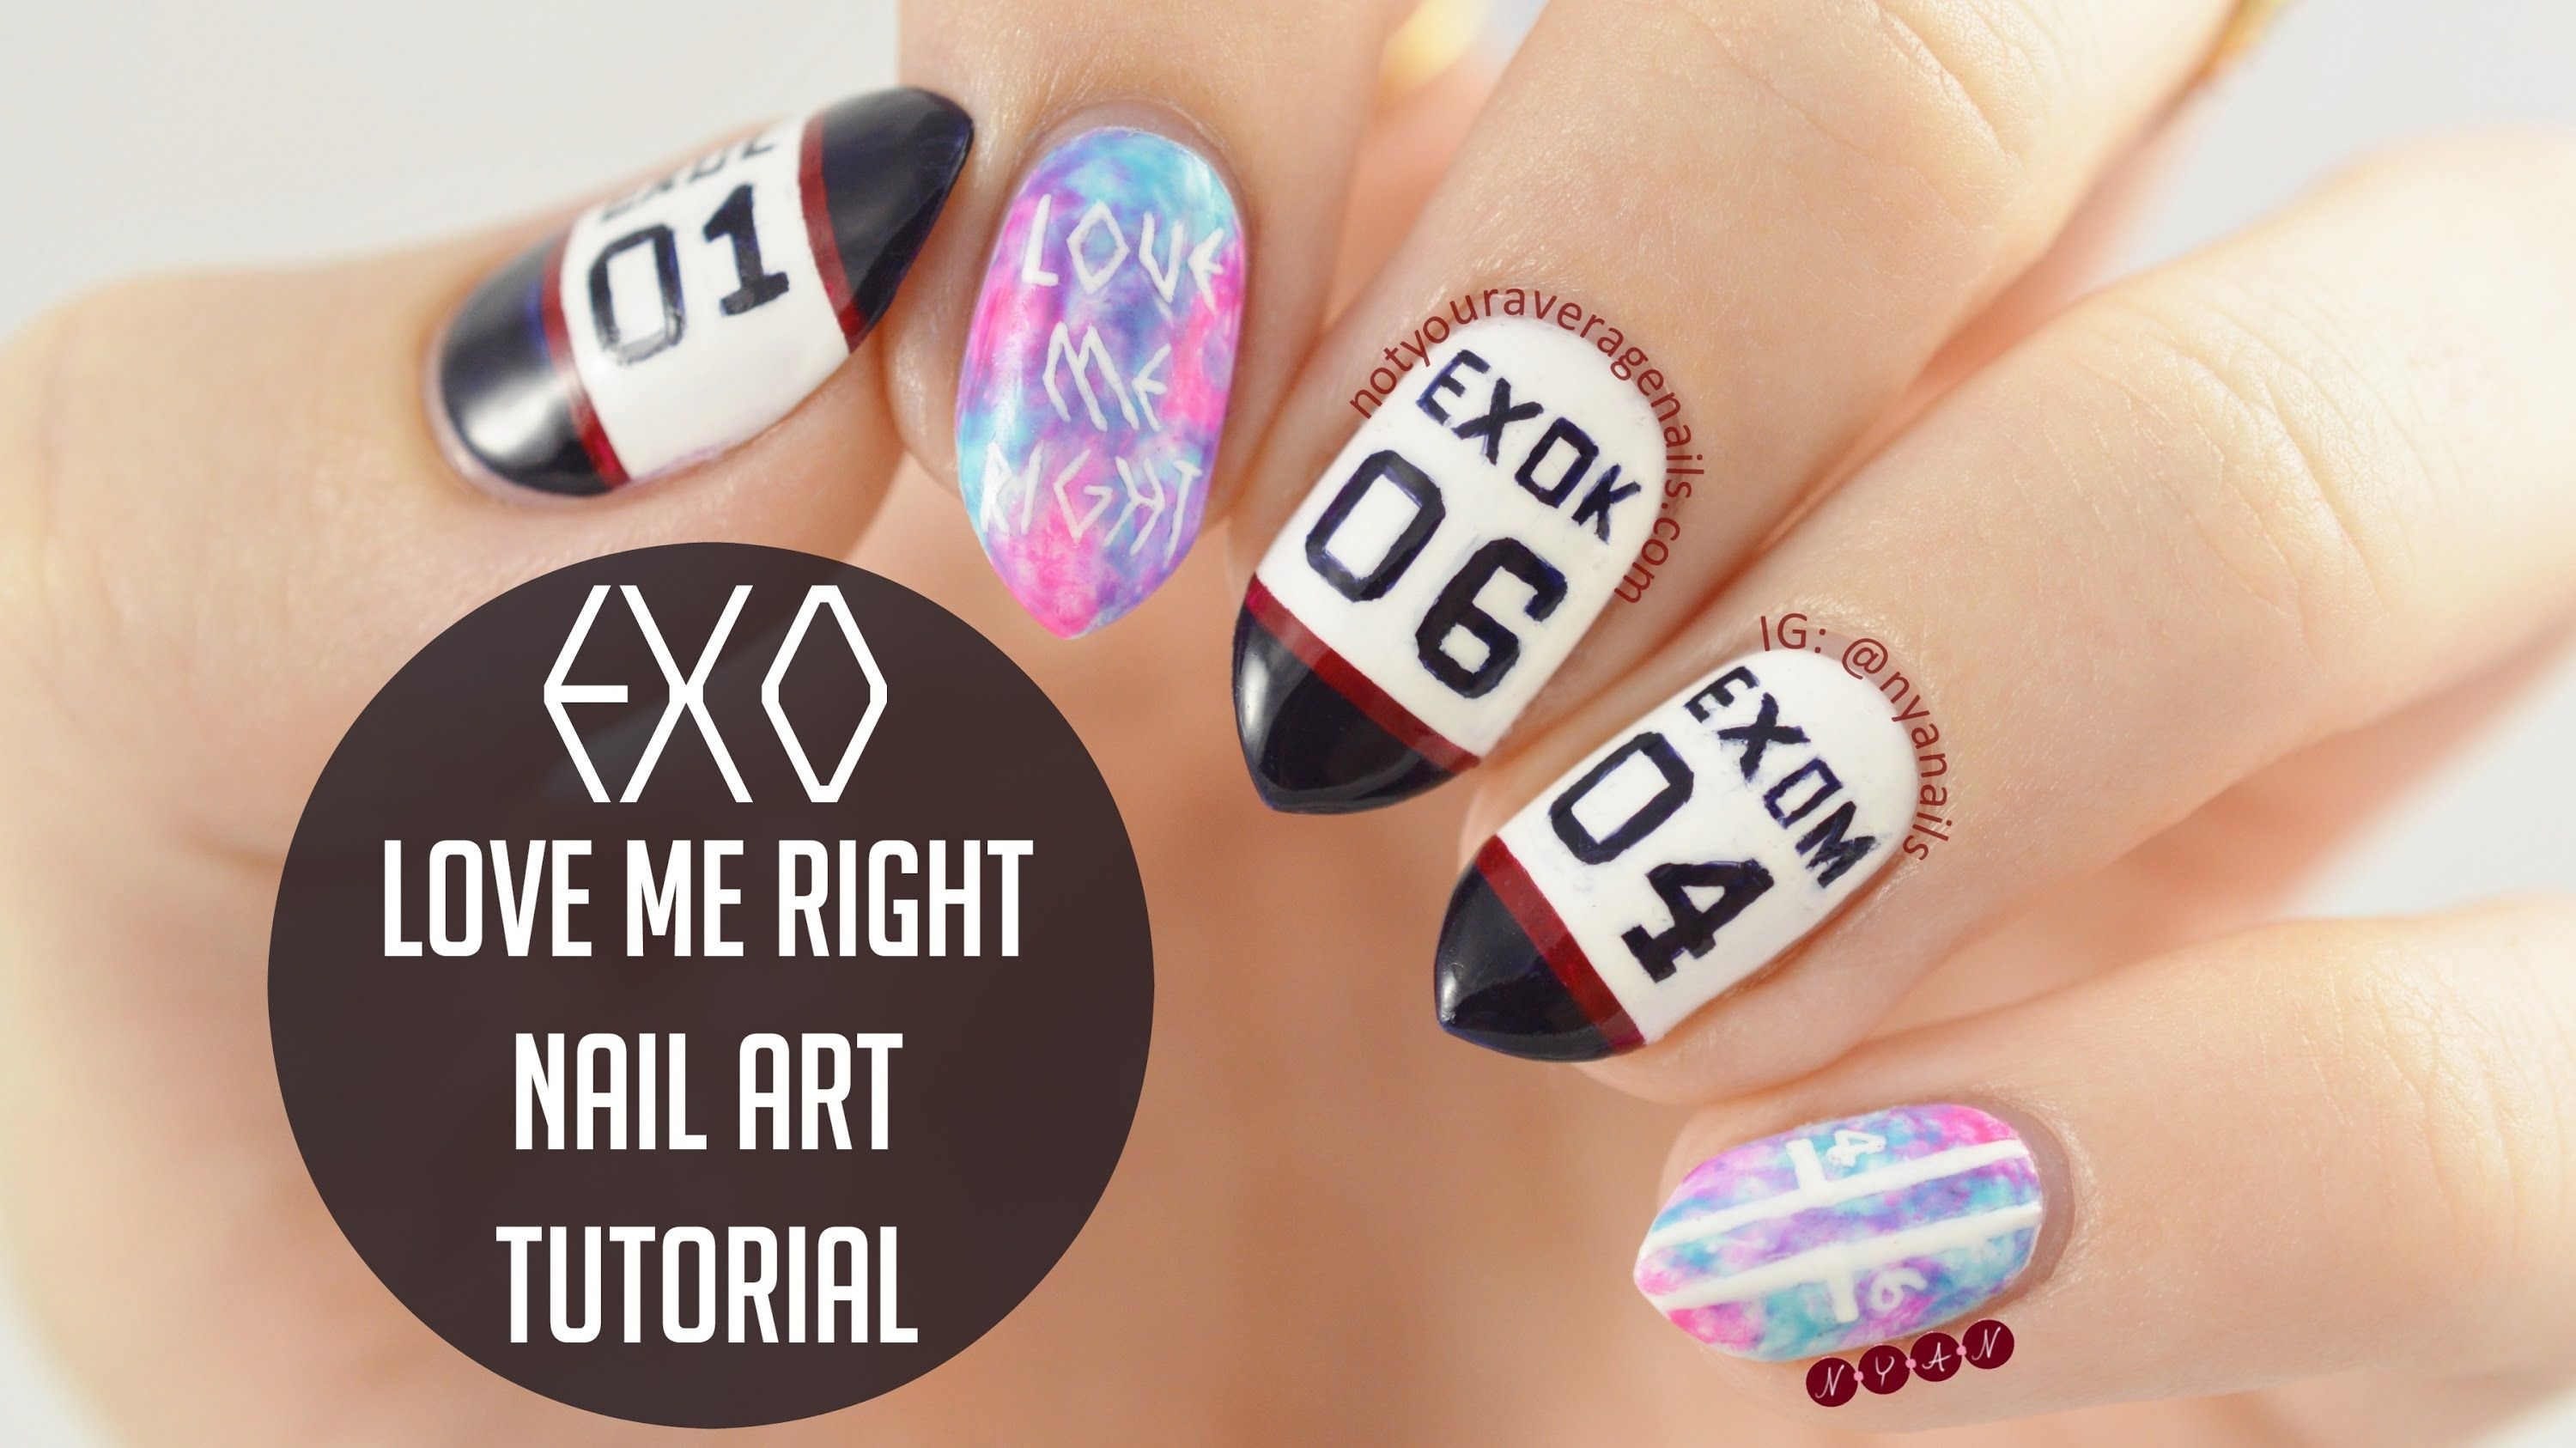 Exo lovemeright nail art tutorial nyan tutorials i put together a little tutorial to show how i painted my exo love me right nail design the tutorial shows how to do both the tie dye nails and prinsesfo Choice Image